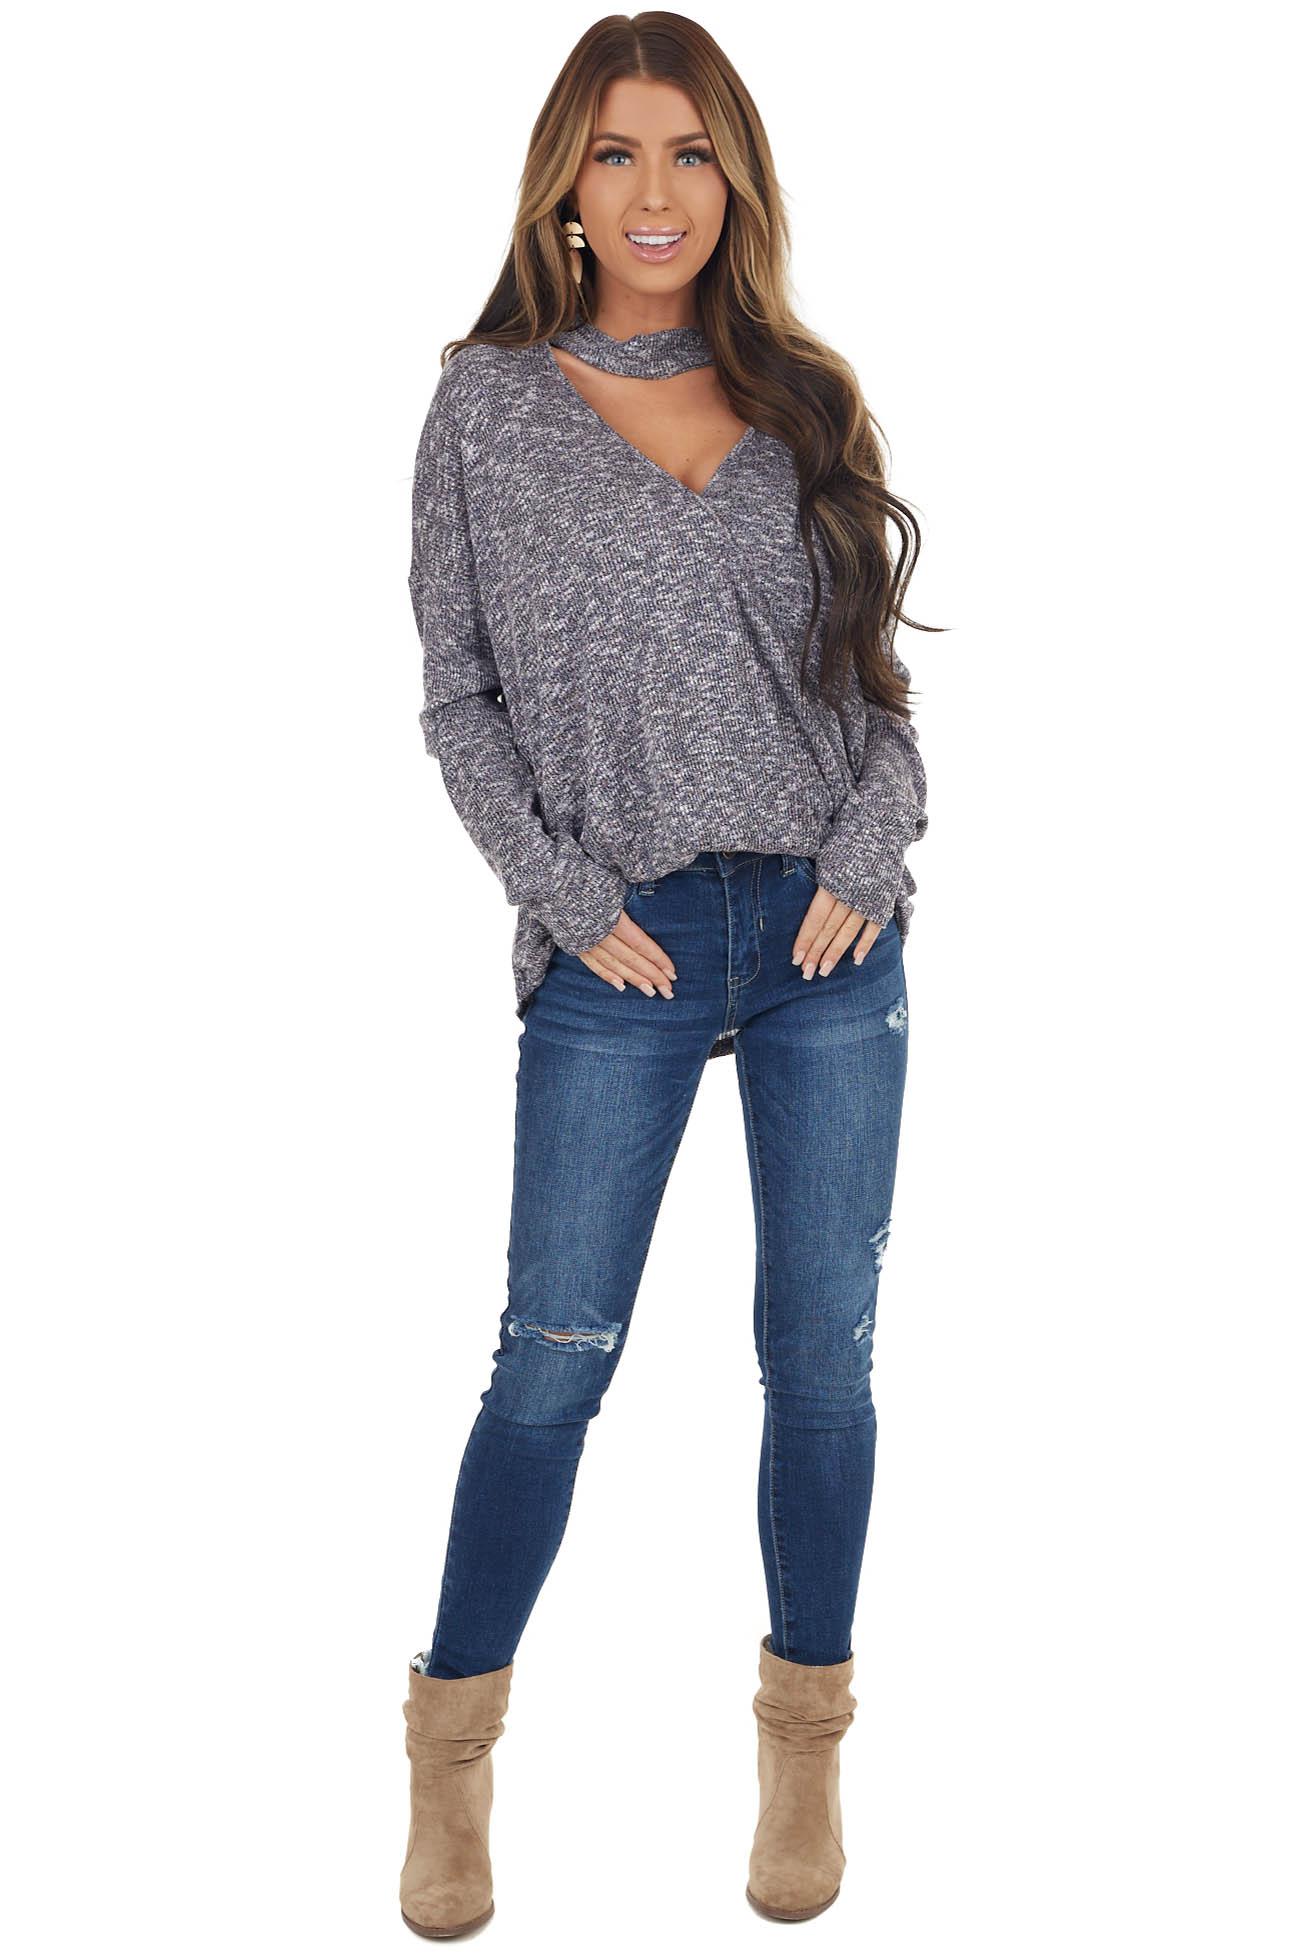 Black Two Tone Surplice Knit Top with Choker Neck Detail